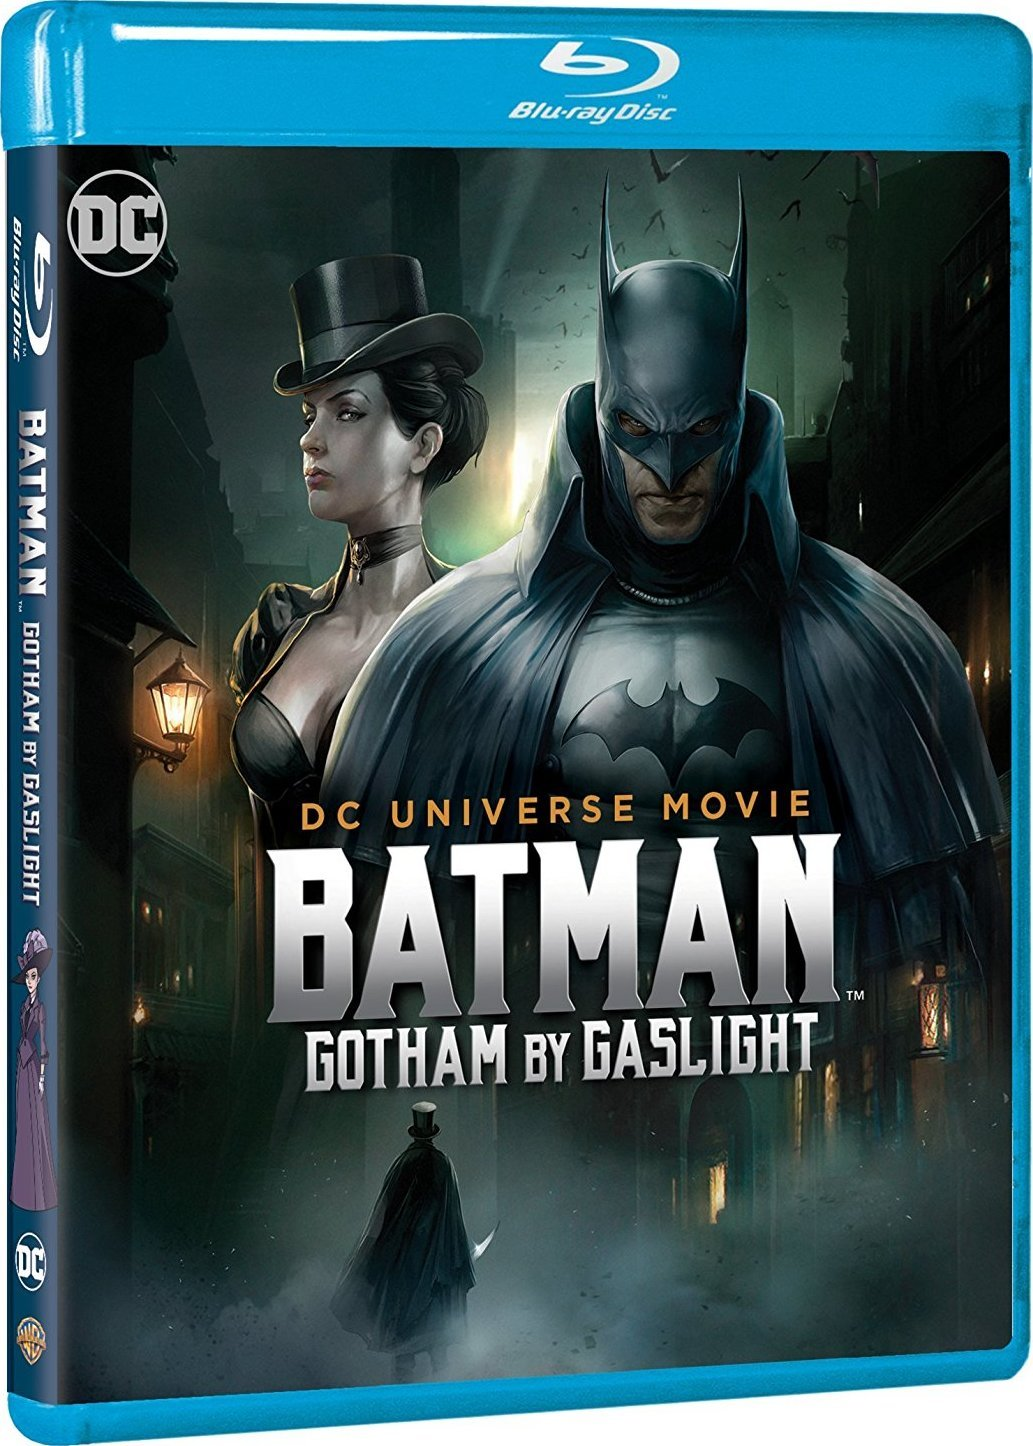 Batman Gotham by Gaslight 2018 2160p UHD HDR BluRay